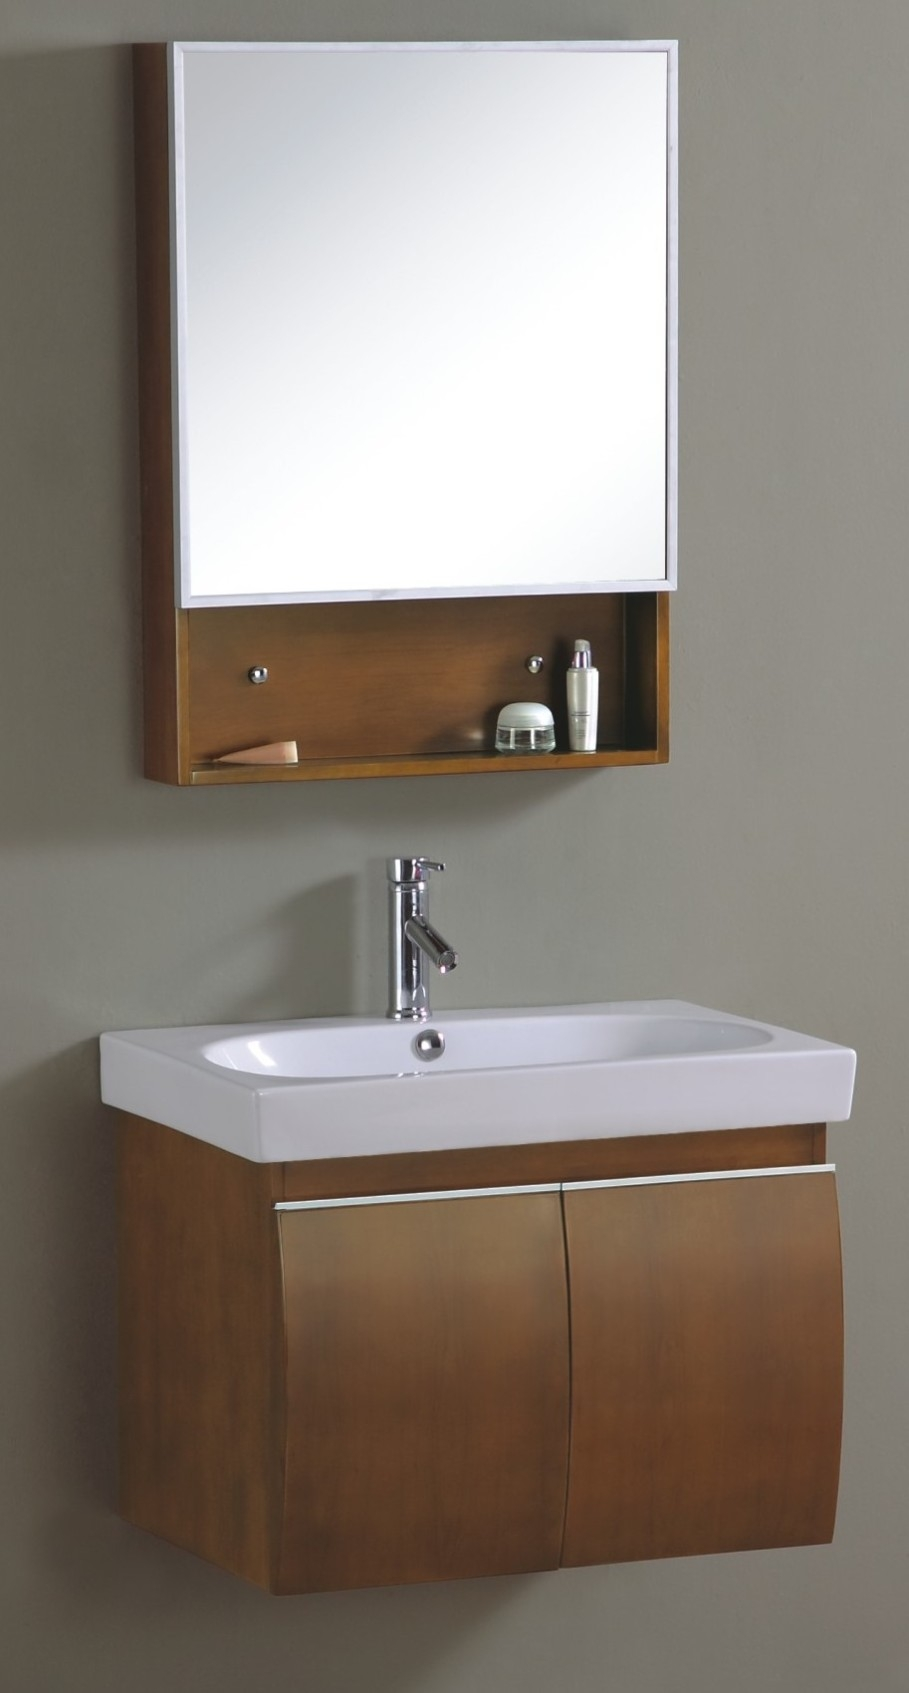 Altamarea Unusual Wall Hung Bathroom Vanities with Sink photo - 1